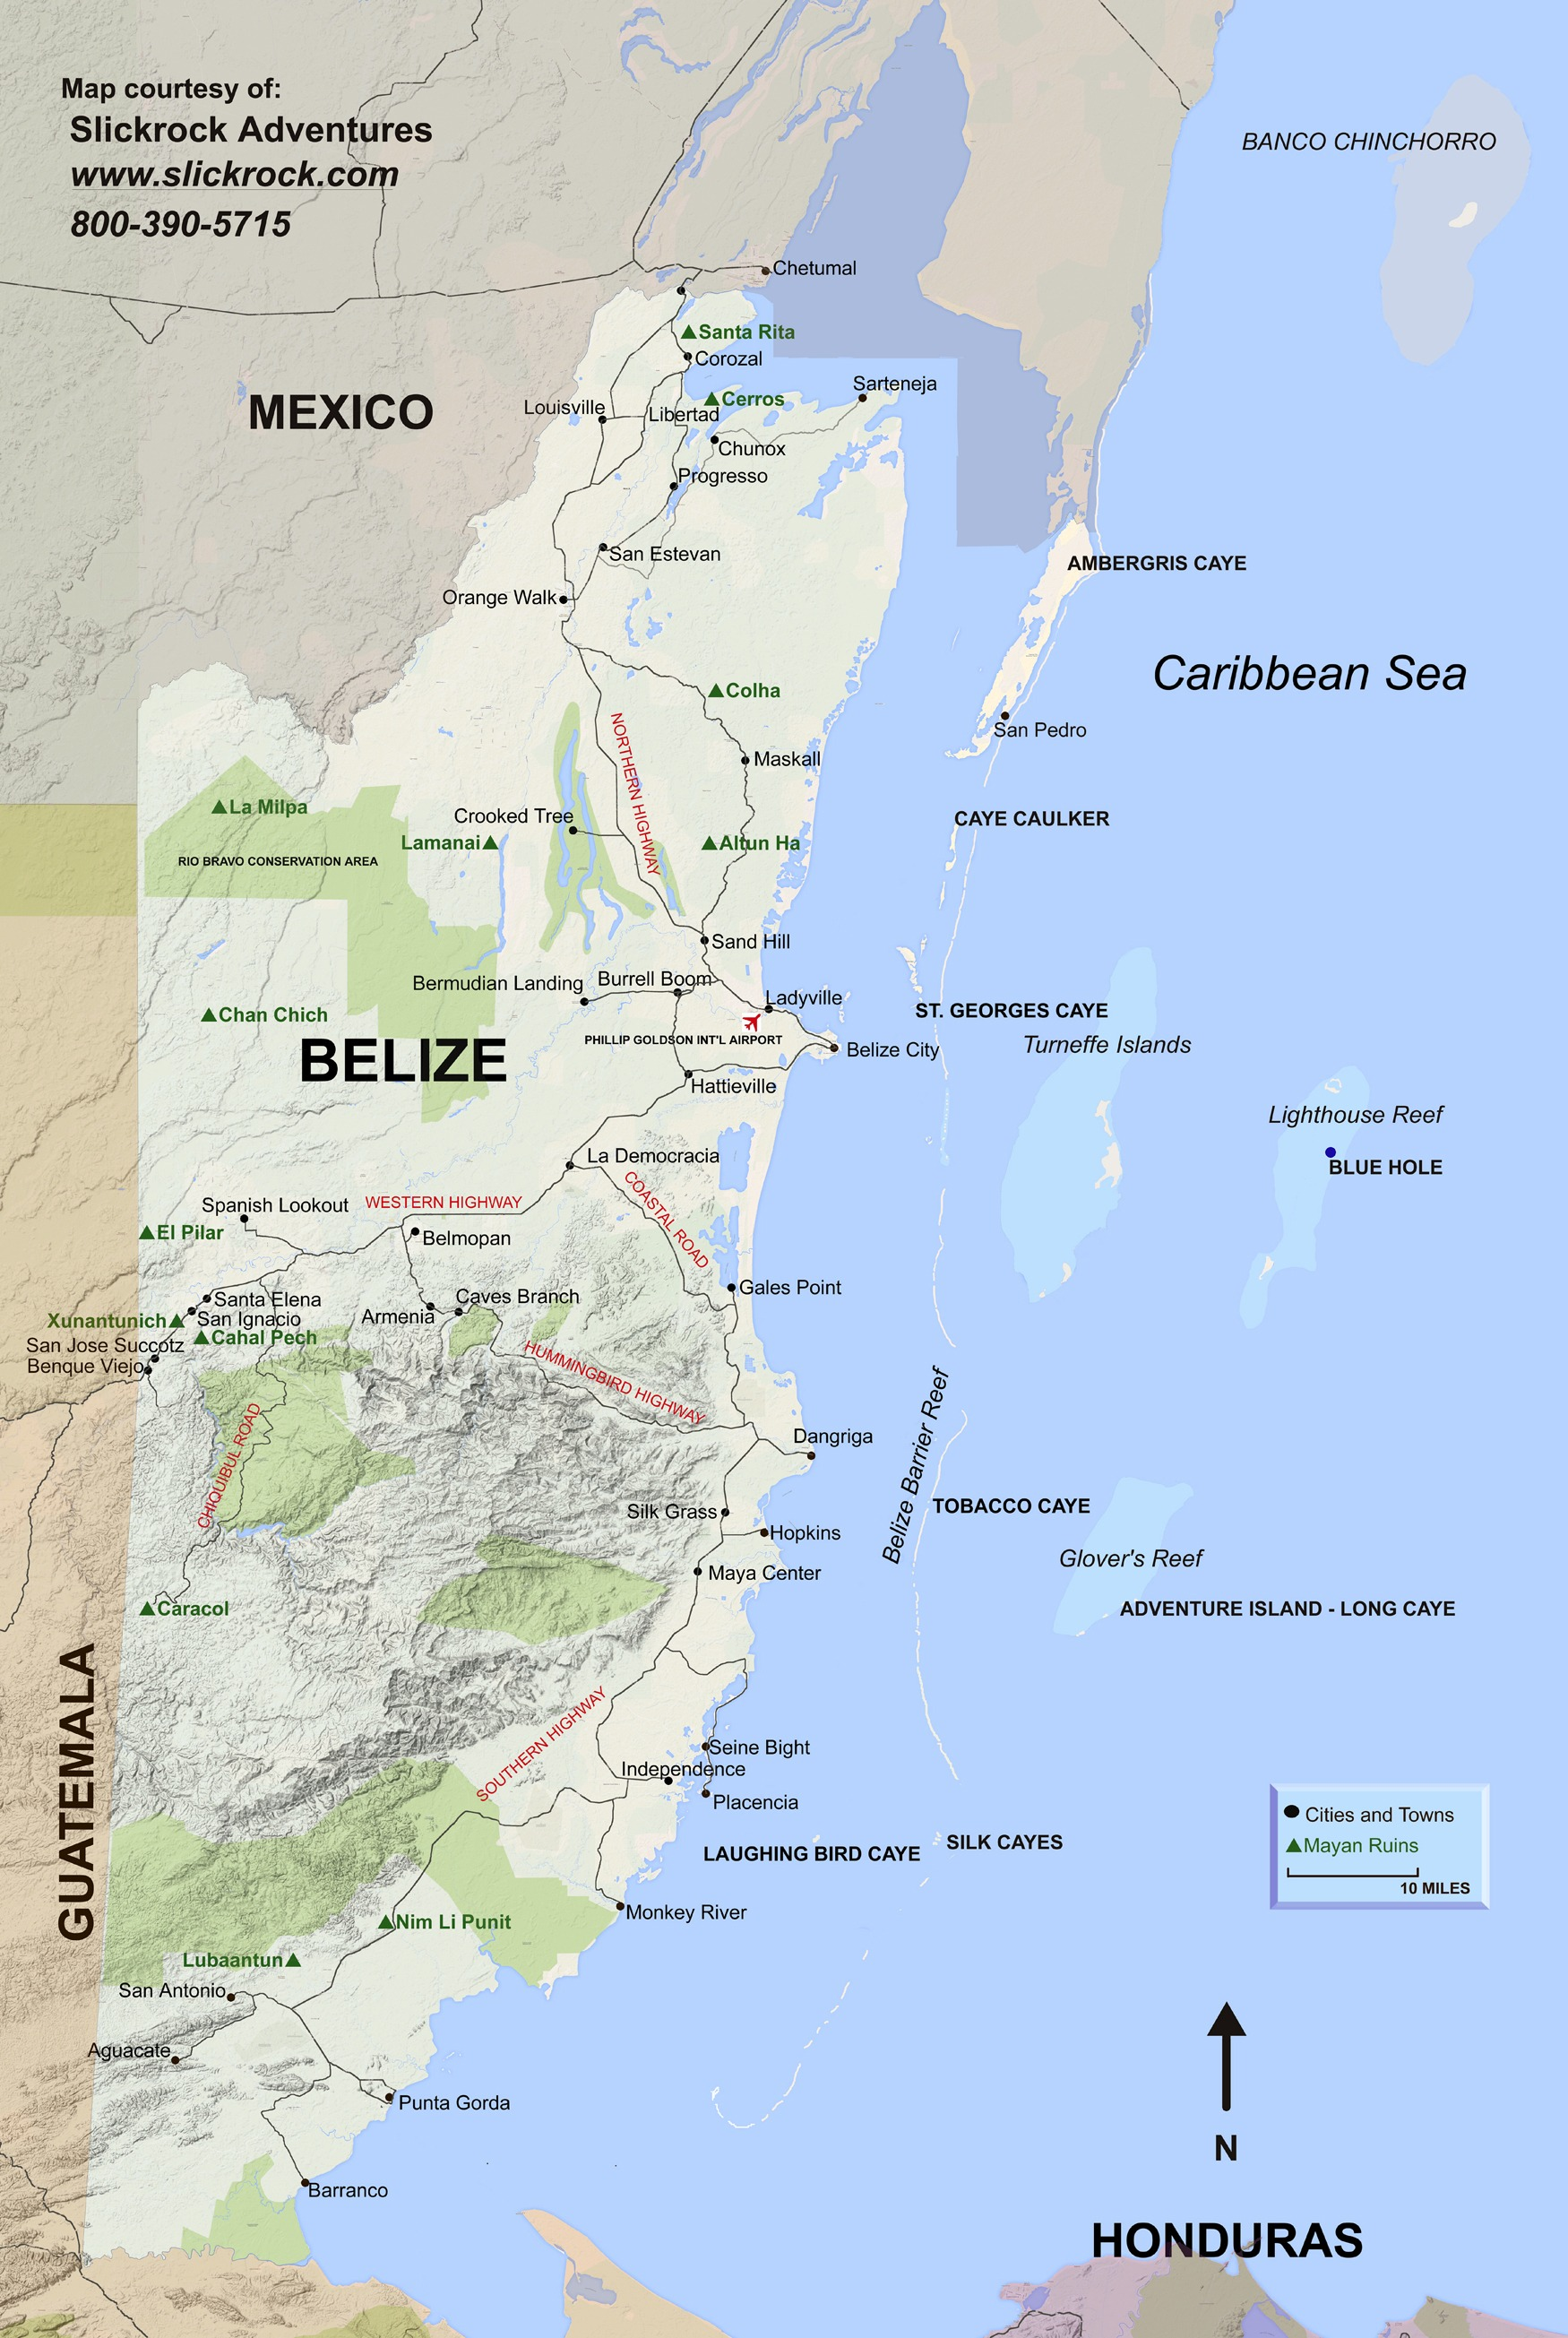 Belize Mayan ruins map